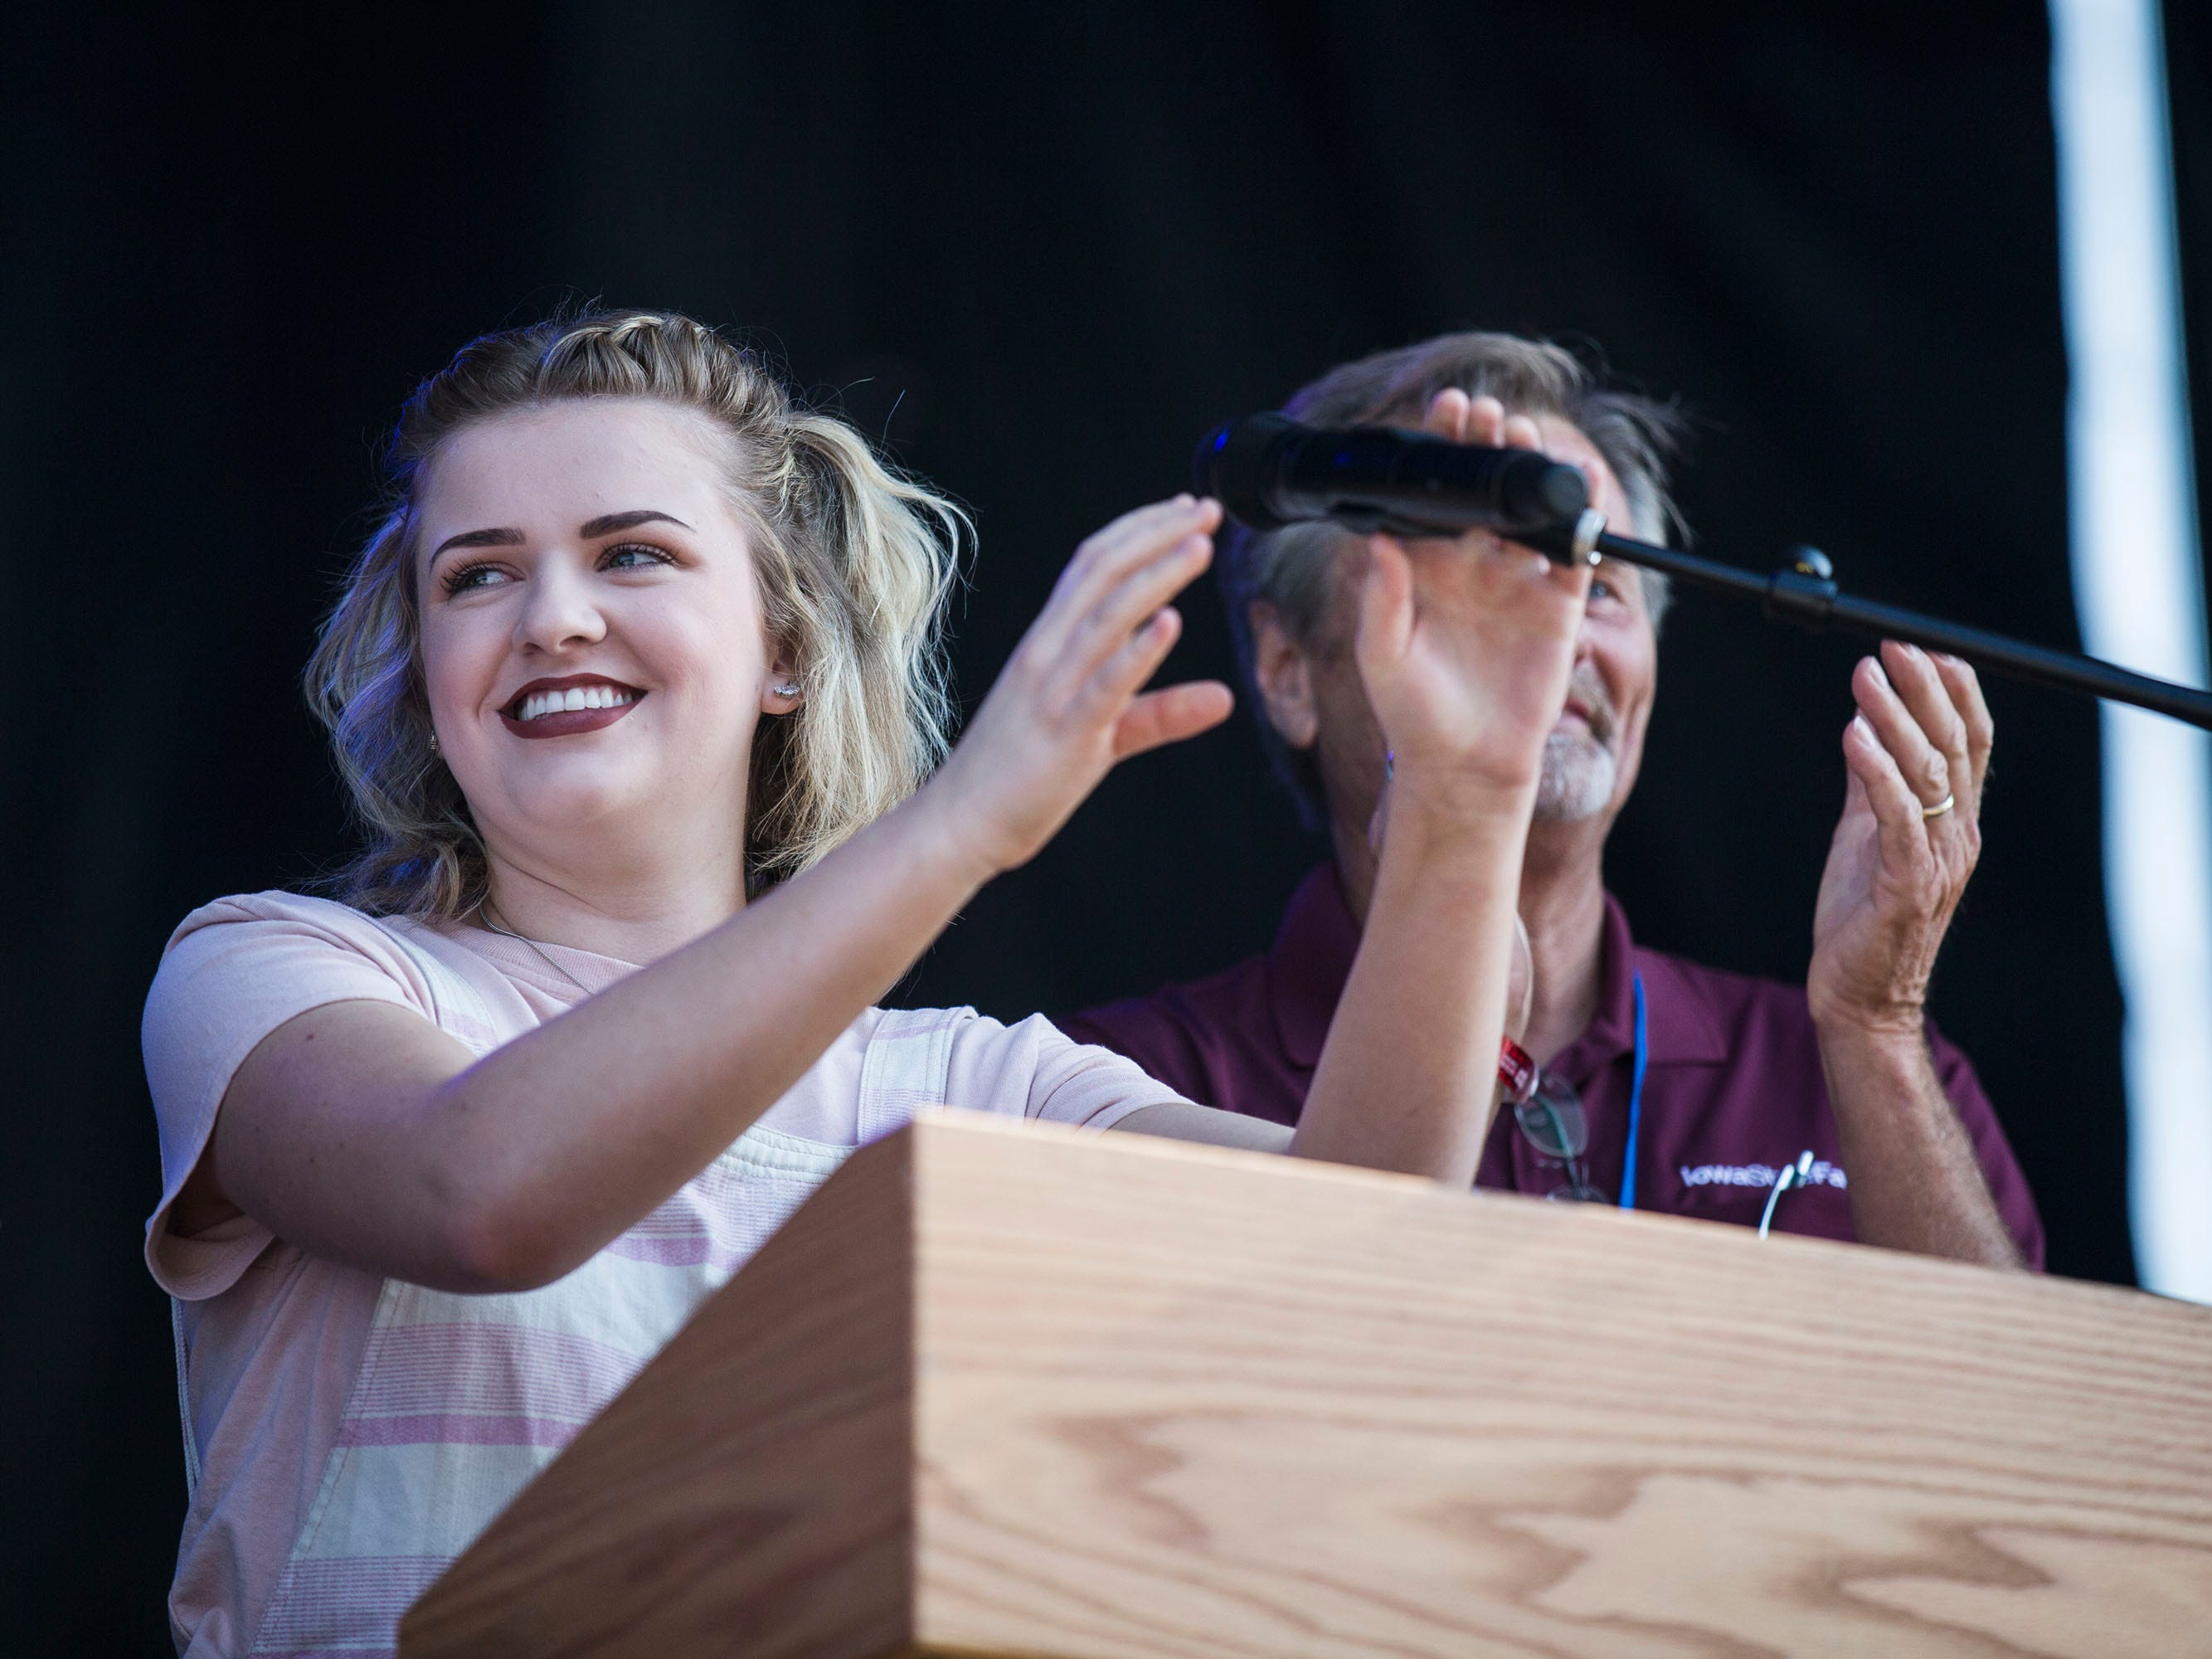 Maddie Poppe, winner of season 16 of American Idol and Iowa native, sings the national anthem during the opening ceremonies for the Iowa State Fair on Thursday, August 9, 2018, in Des Moines.